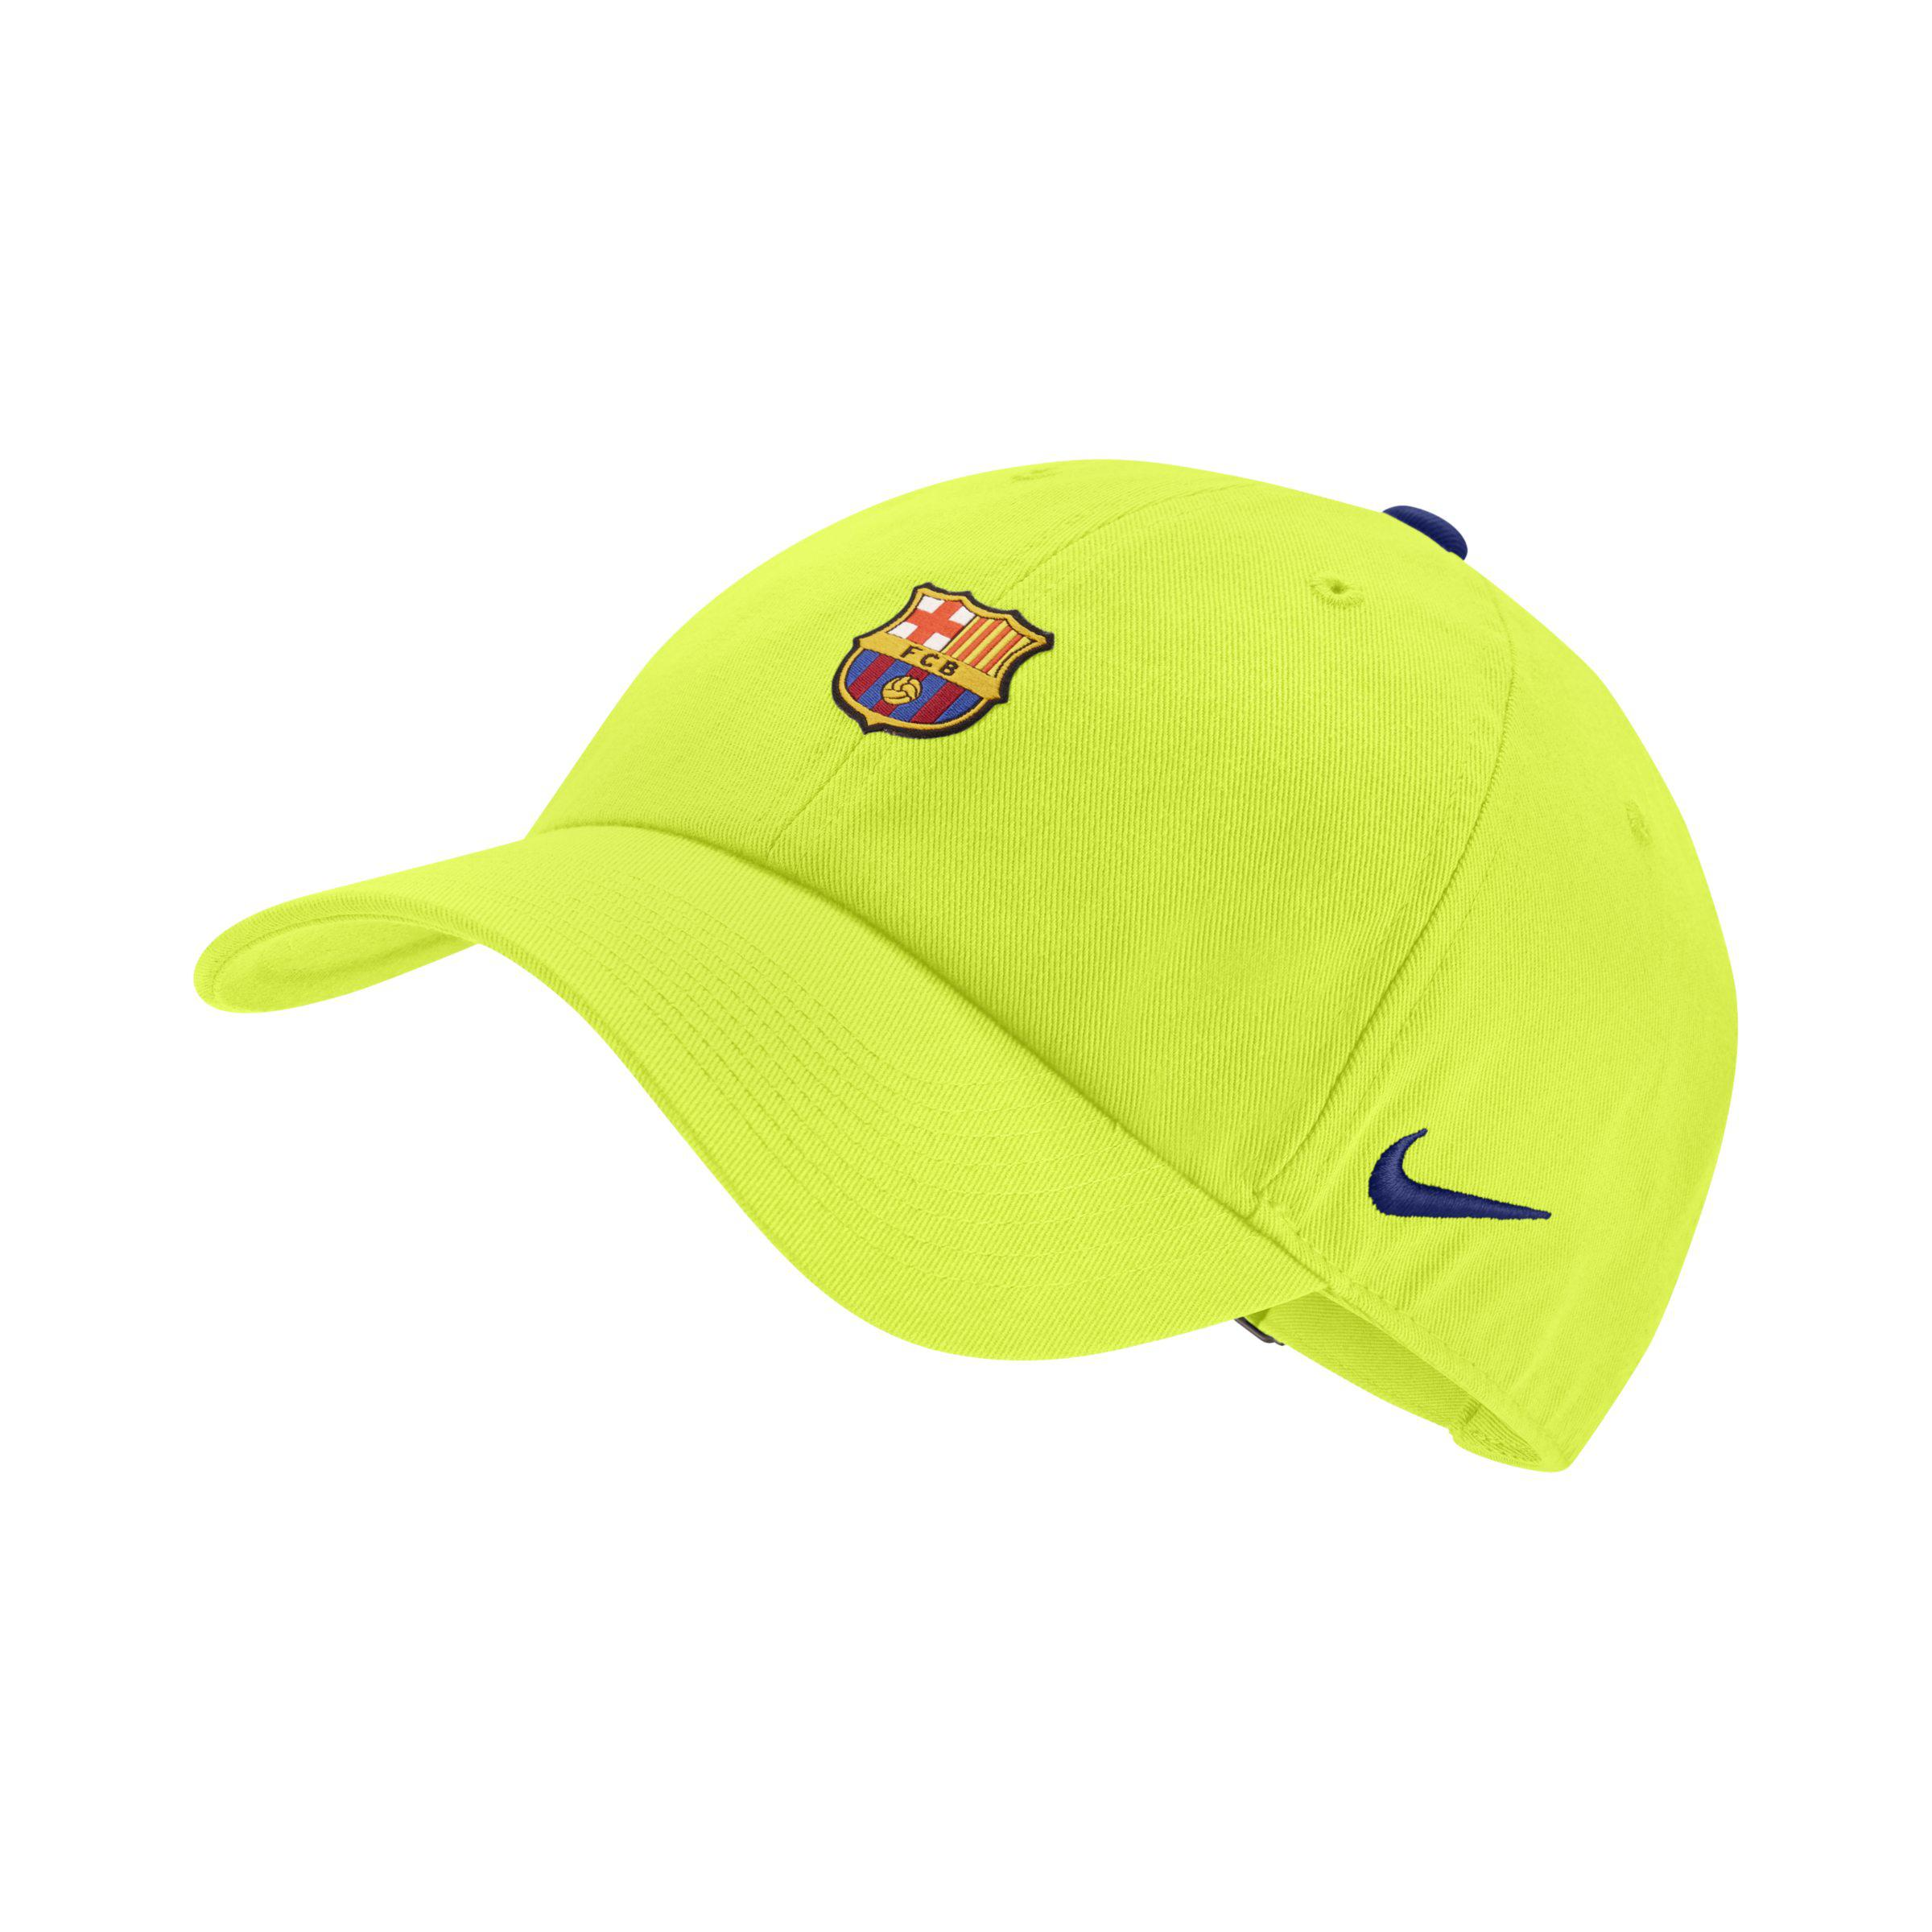 c49aa0a584a Nike Fc Barcelona Heritage 86 Adjustable Hat in Yellow - Lyst